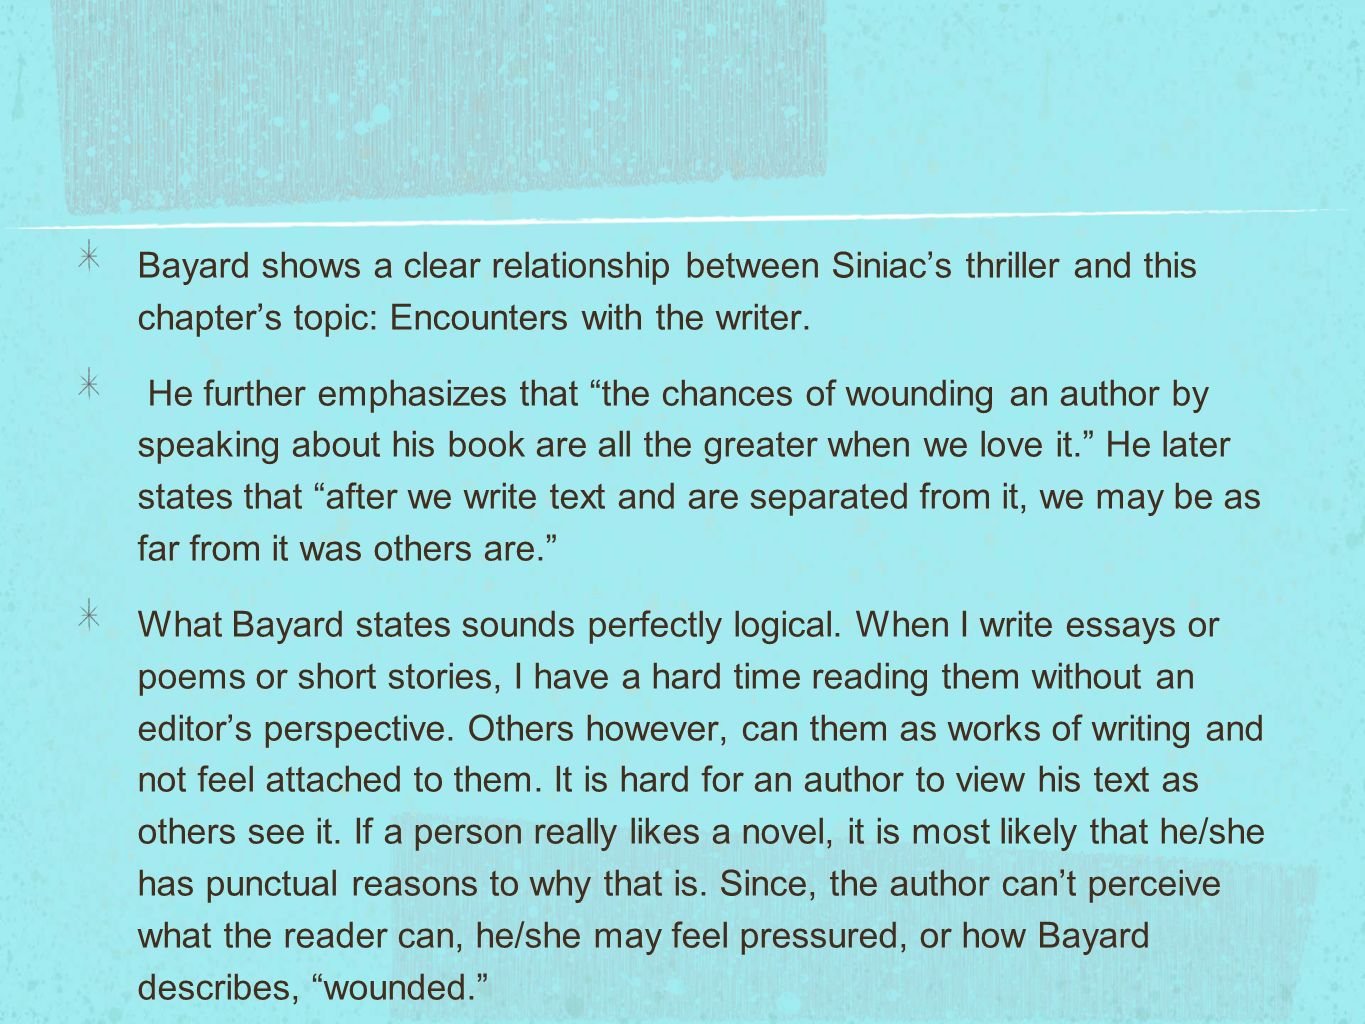 Bayard shows a clear relationship between Siniacs thriller and this chapters topic: Encounters with the writer. He further emphasizes that the chances